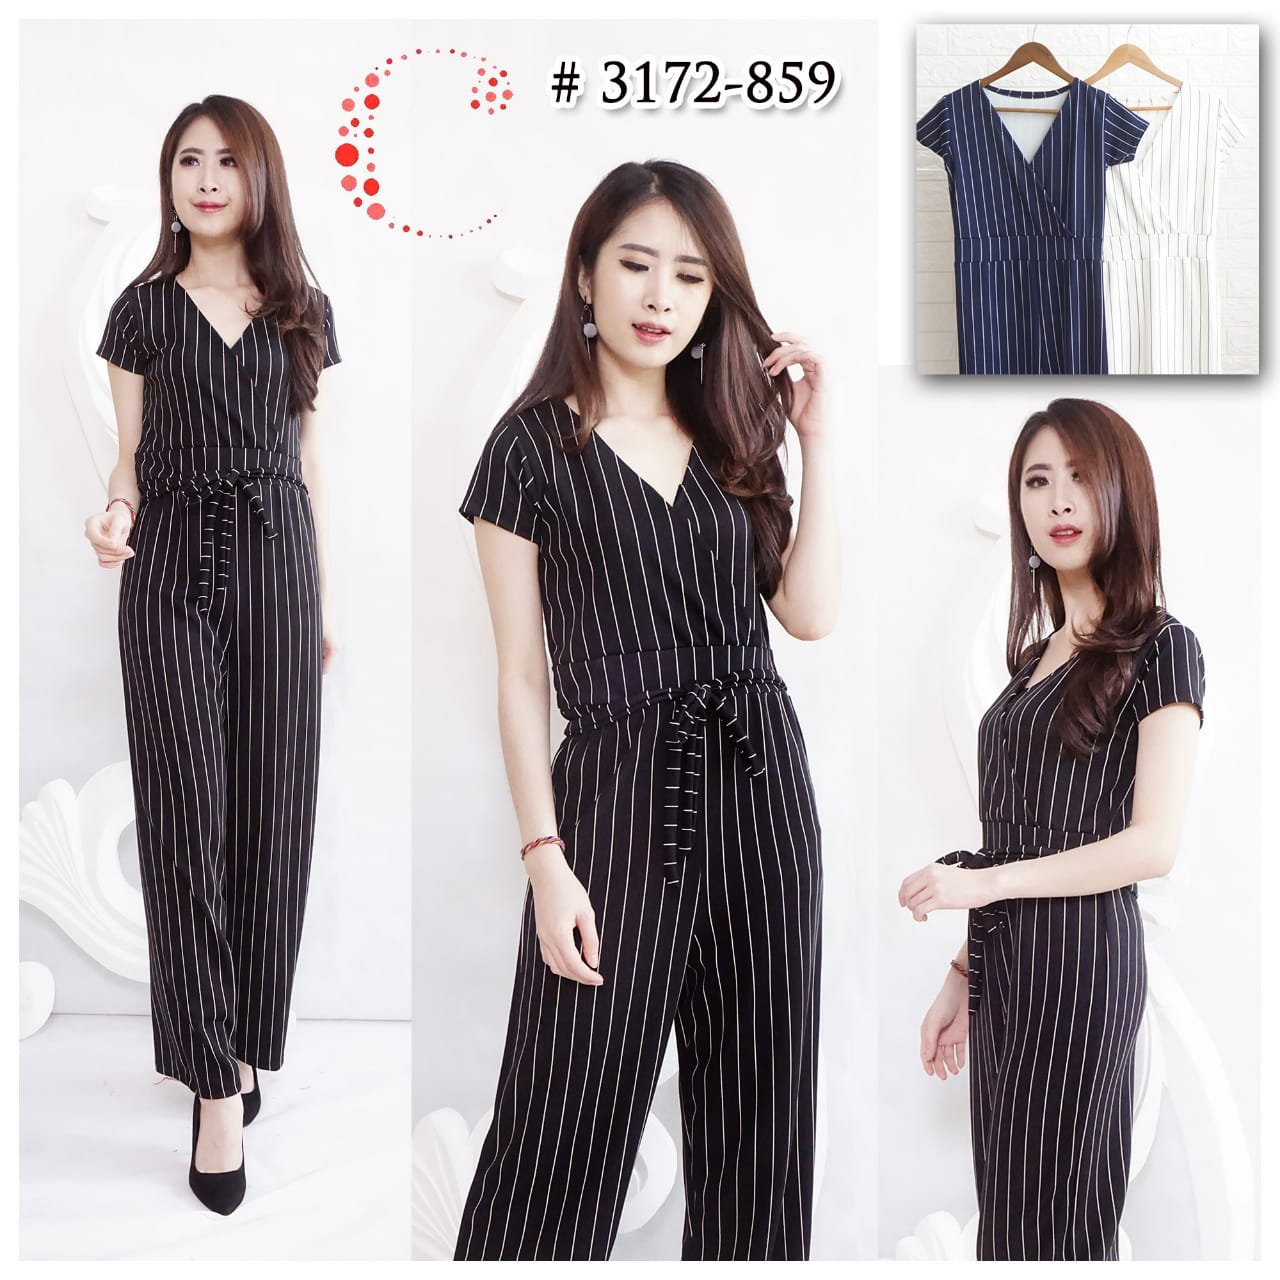 Long stripes jumpsuit 3172-859